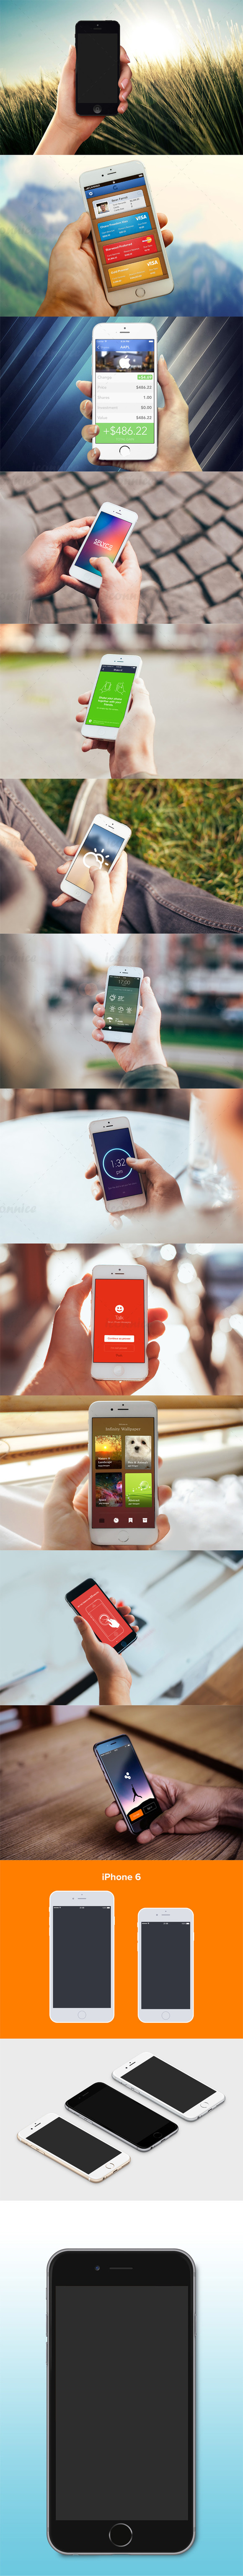 IPhone Holding Hand Mockup Template